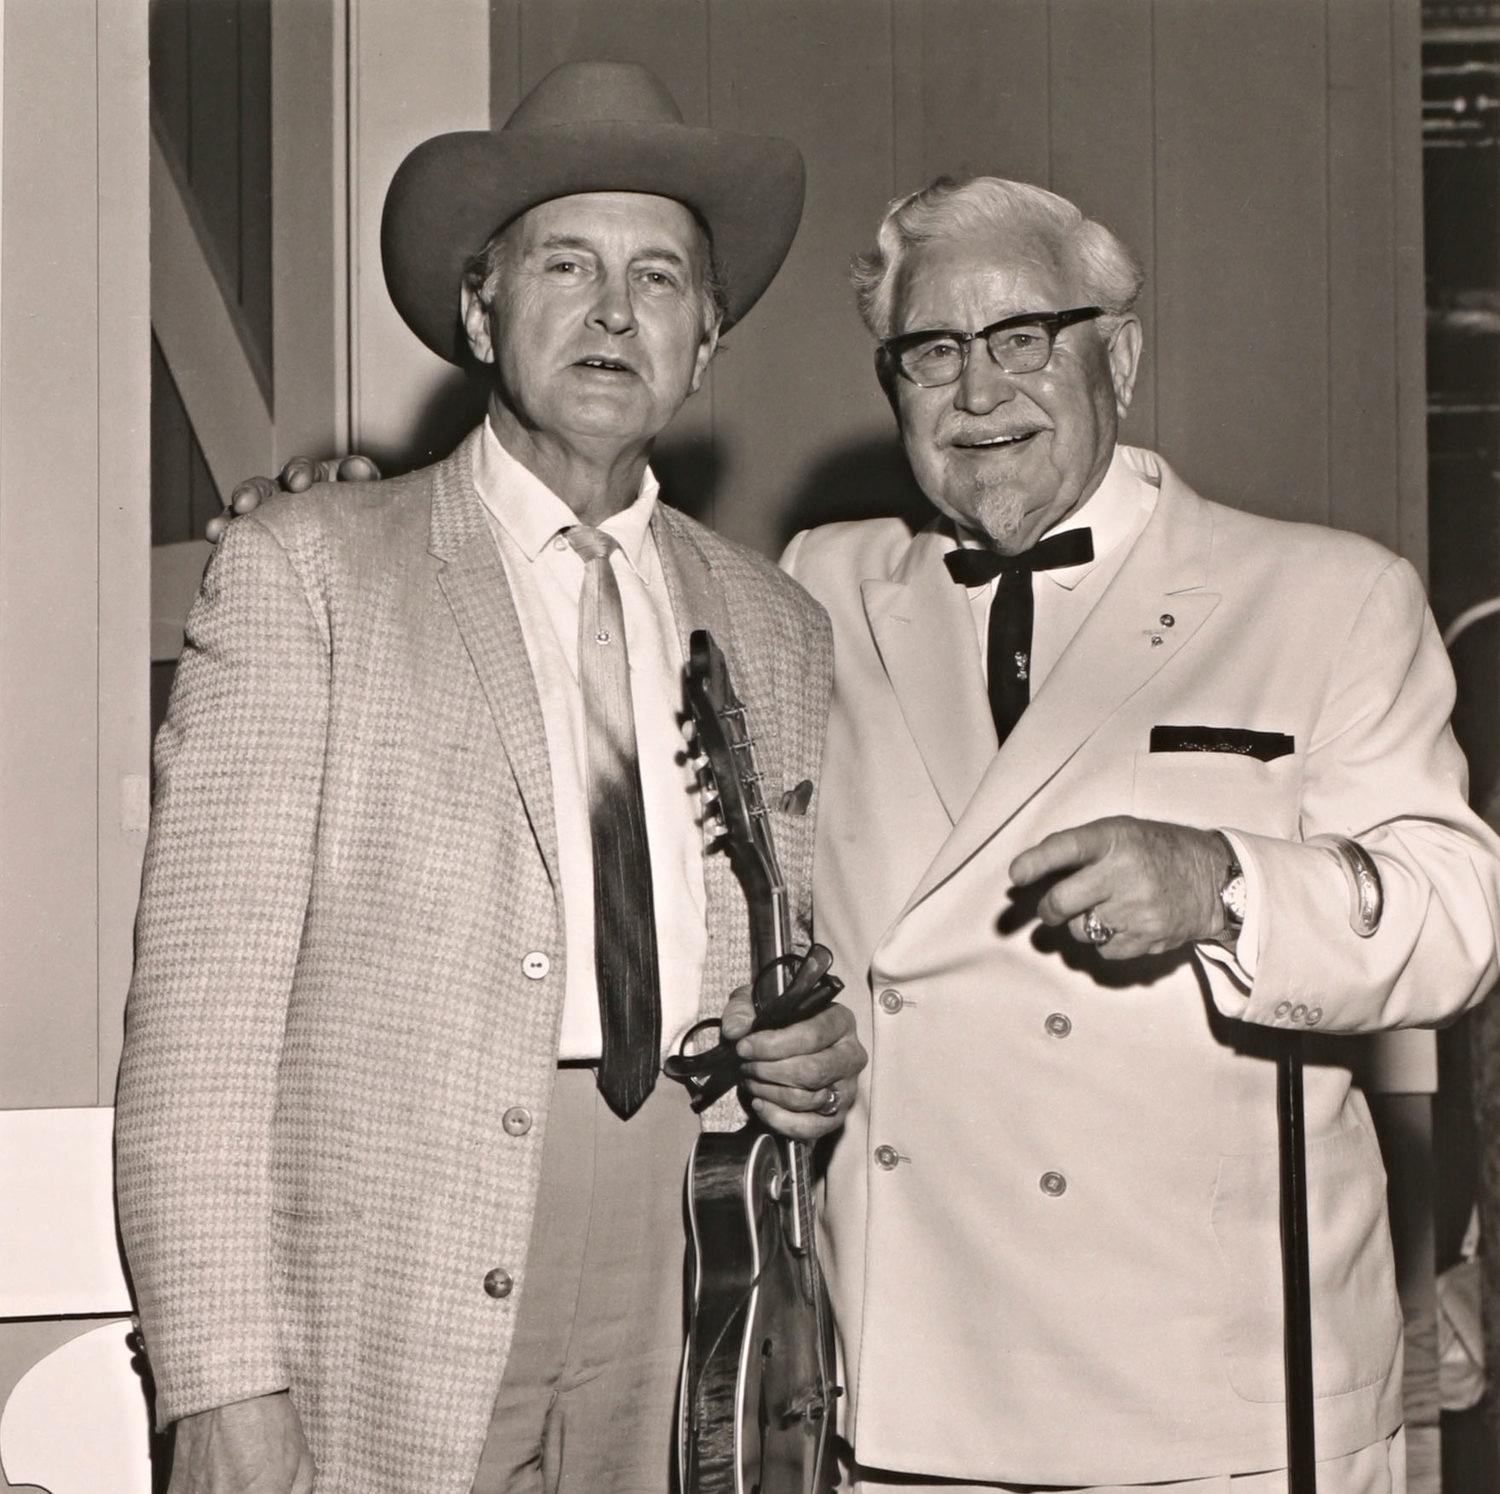 Bill Monroe with Colonel Sanders